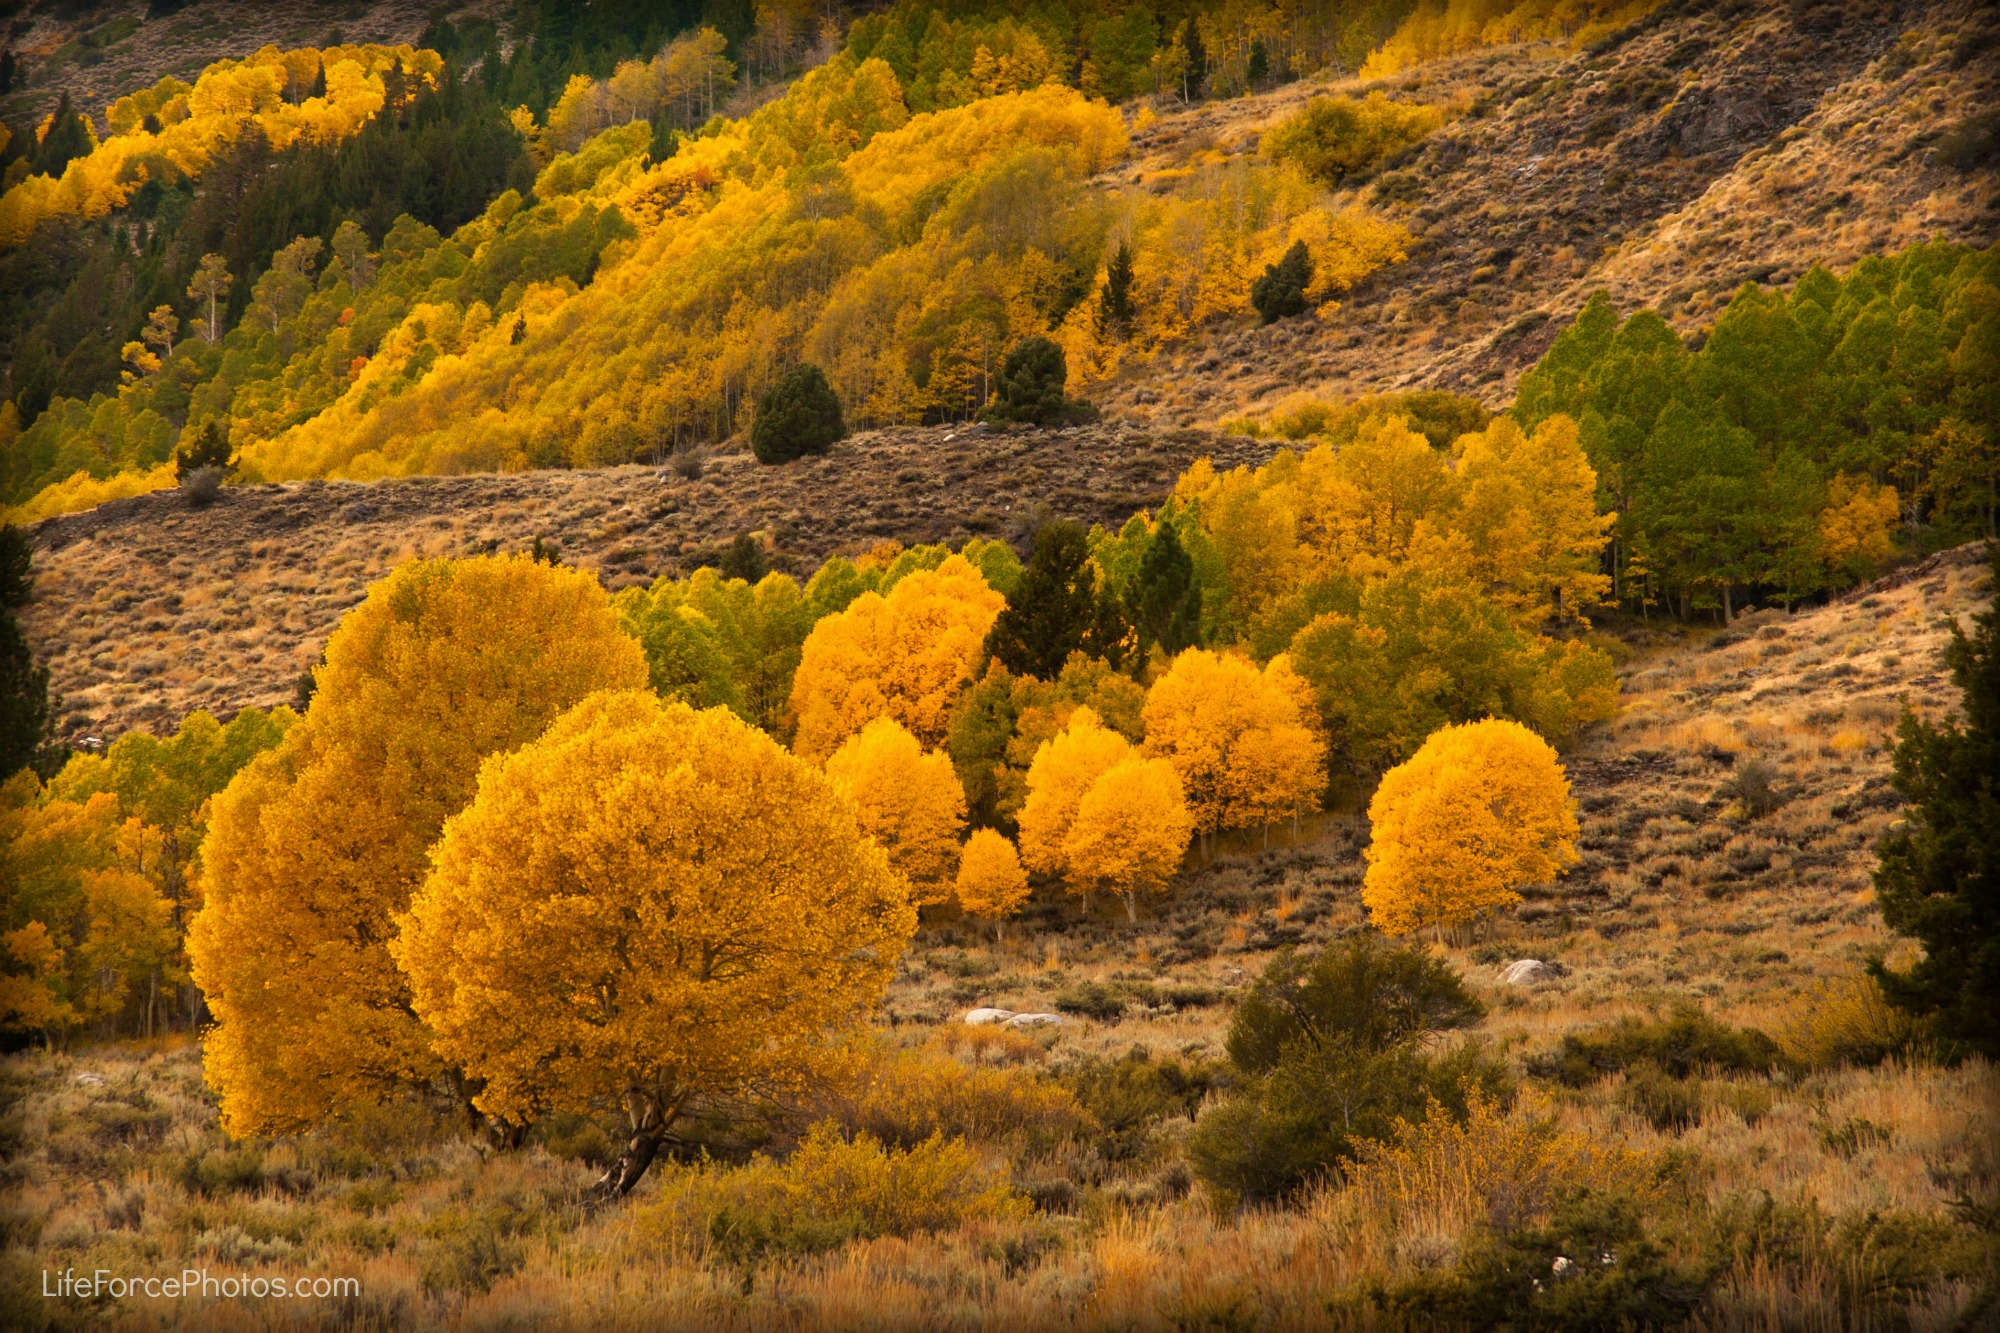 Wandering the Eastern Sierra – Leaving the Golden Forest